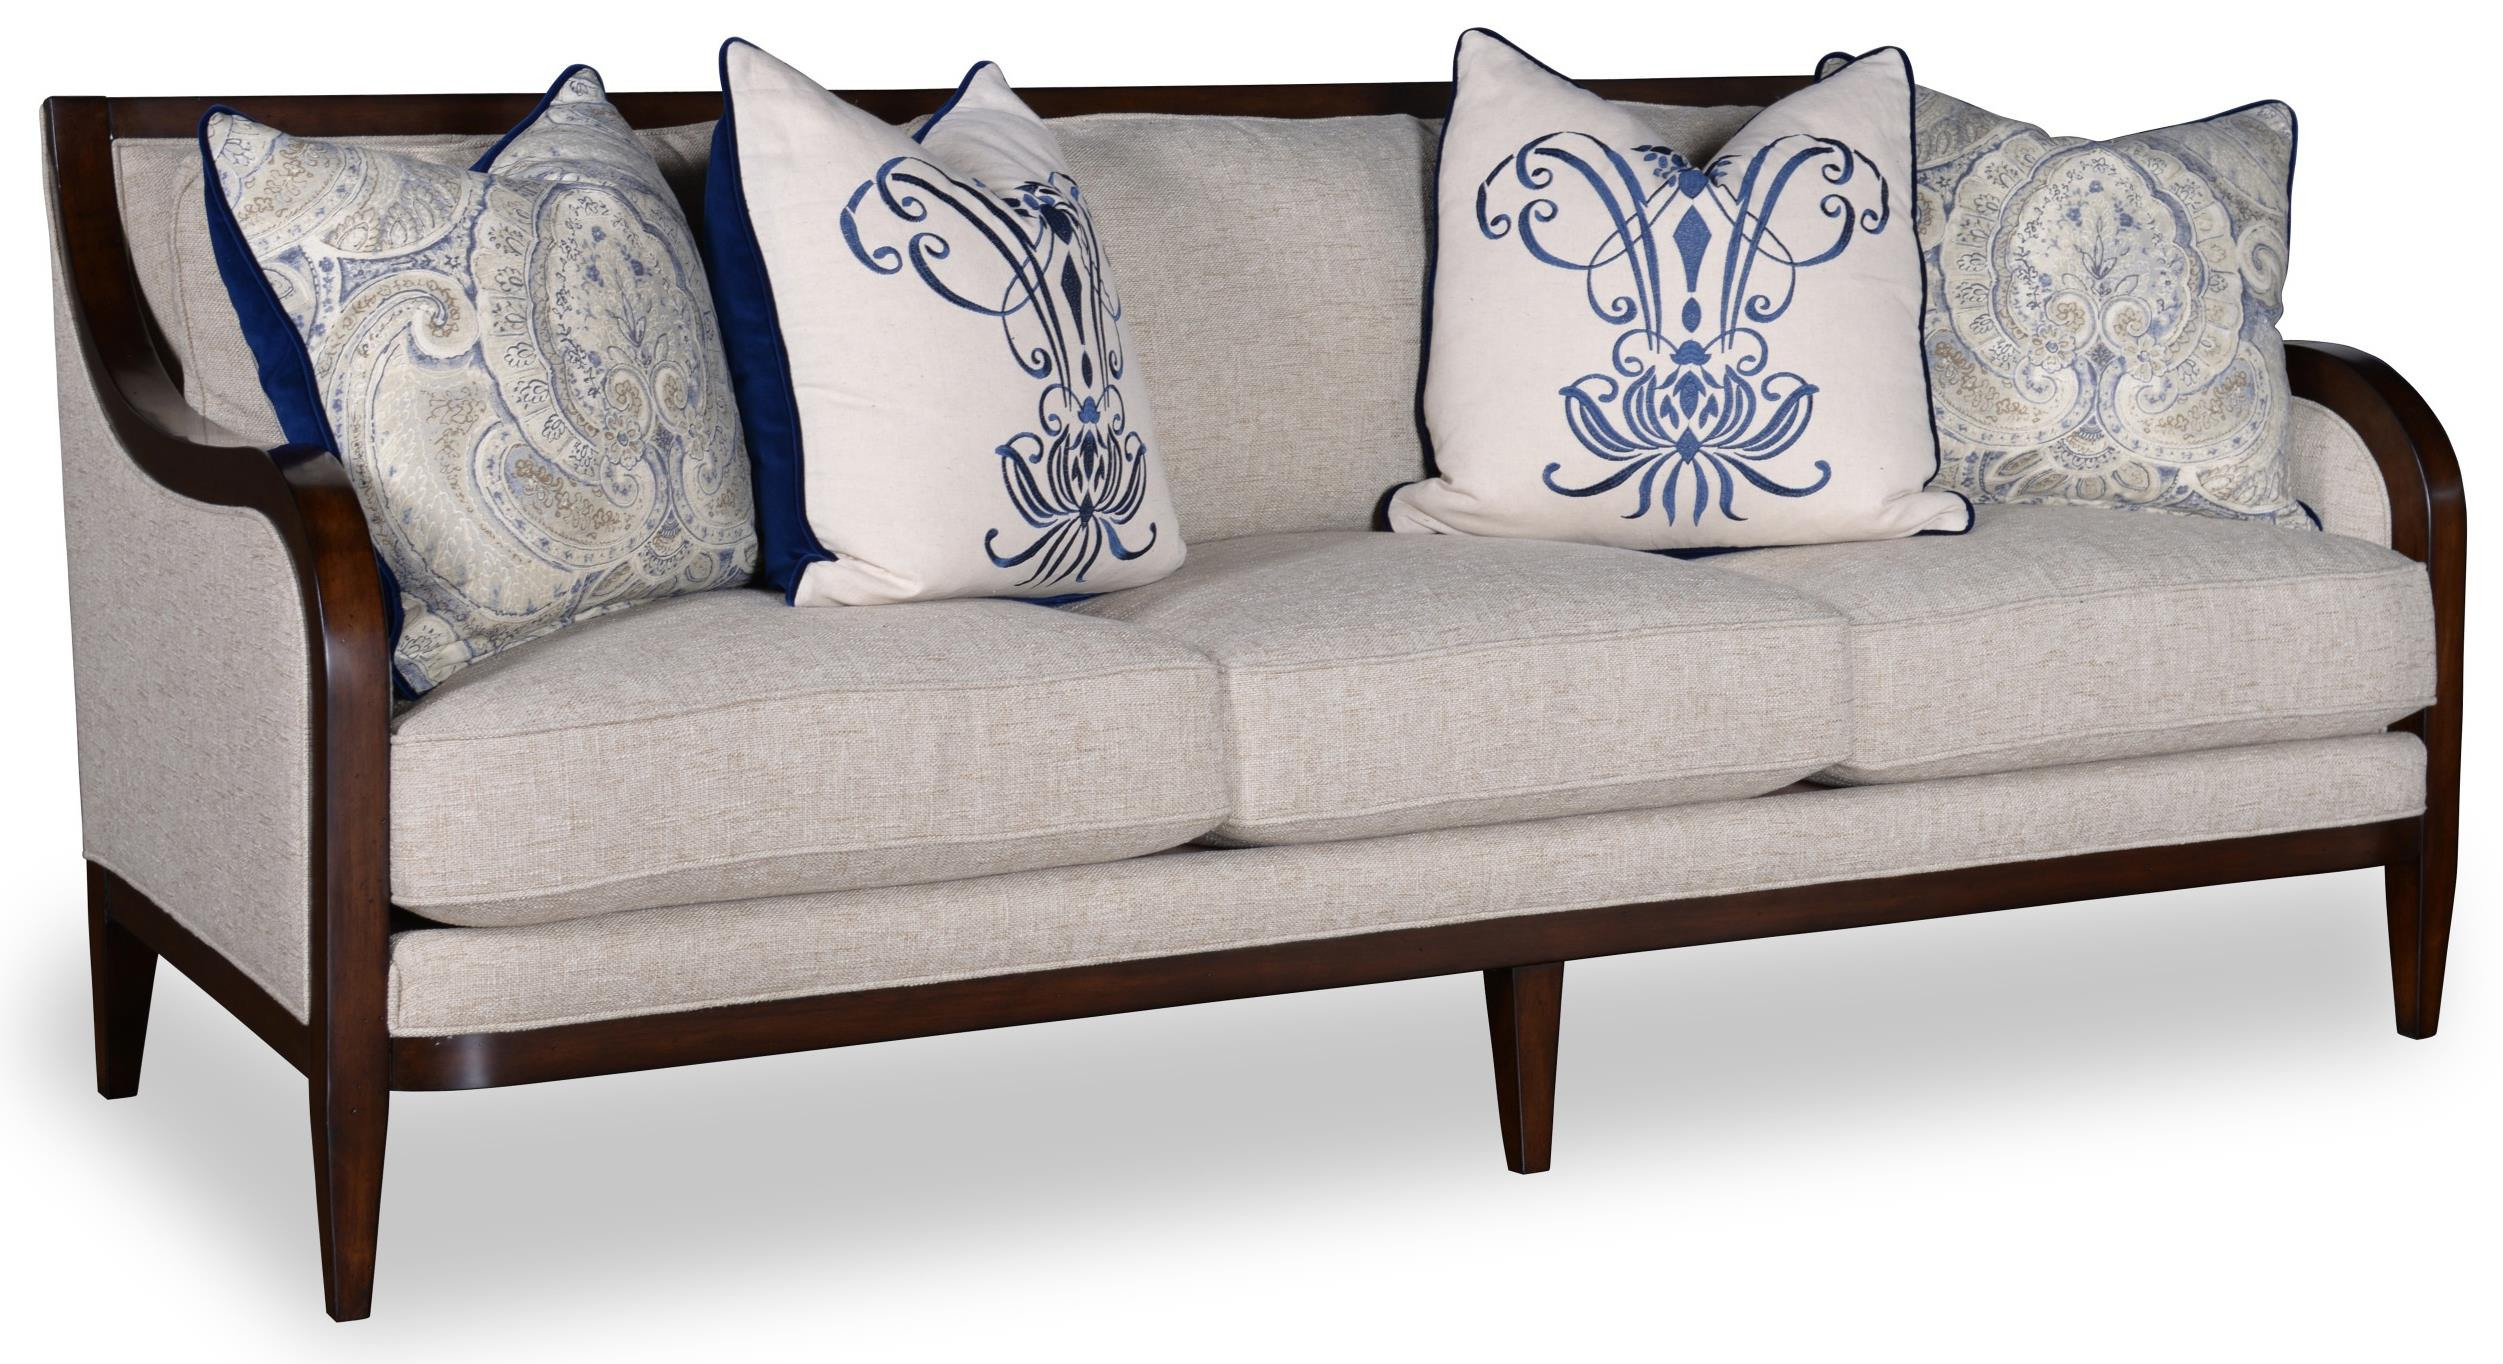 Art Furniture Inc Bristol 3 Seat Sofa With Tapered Legs